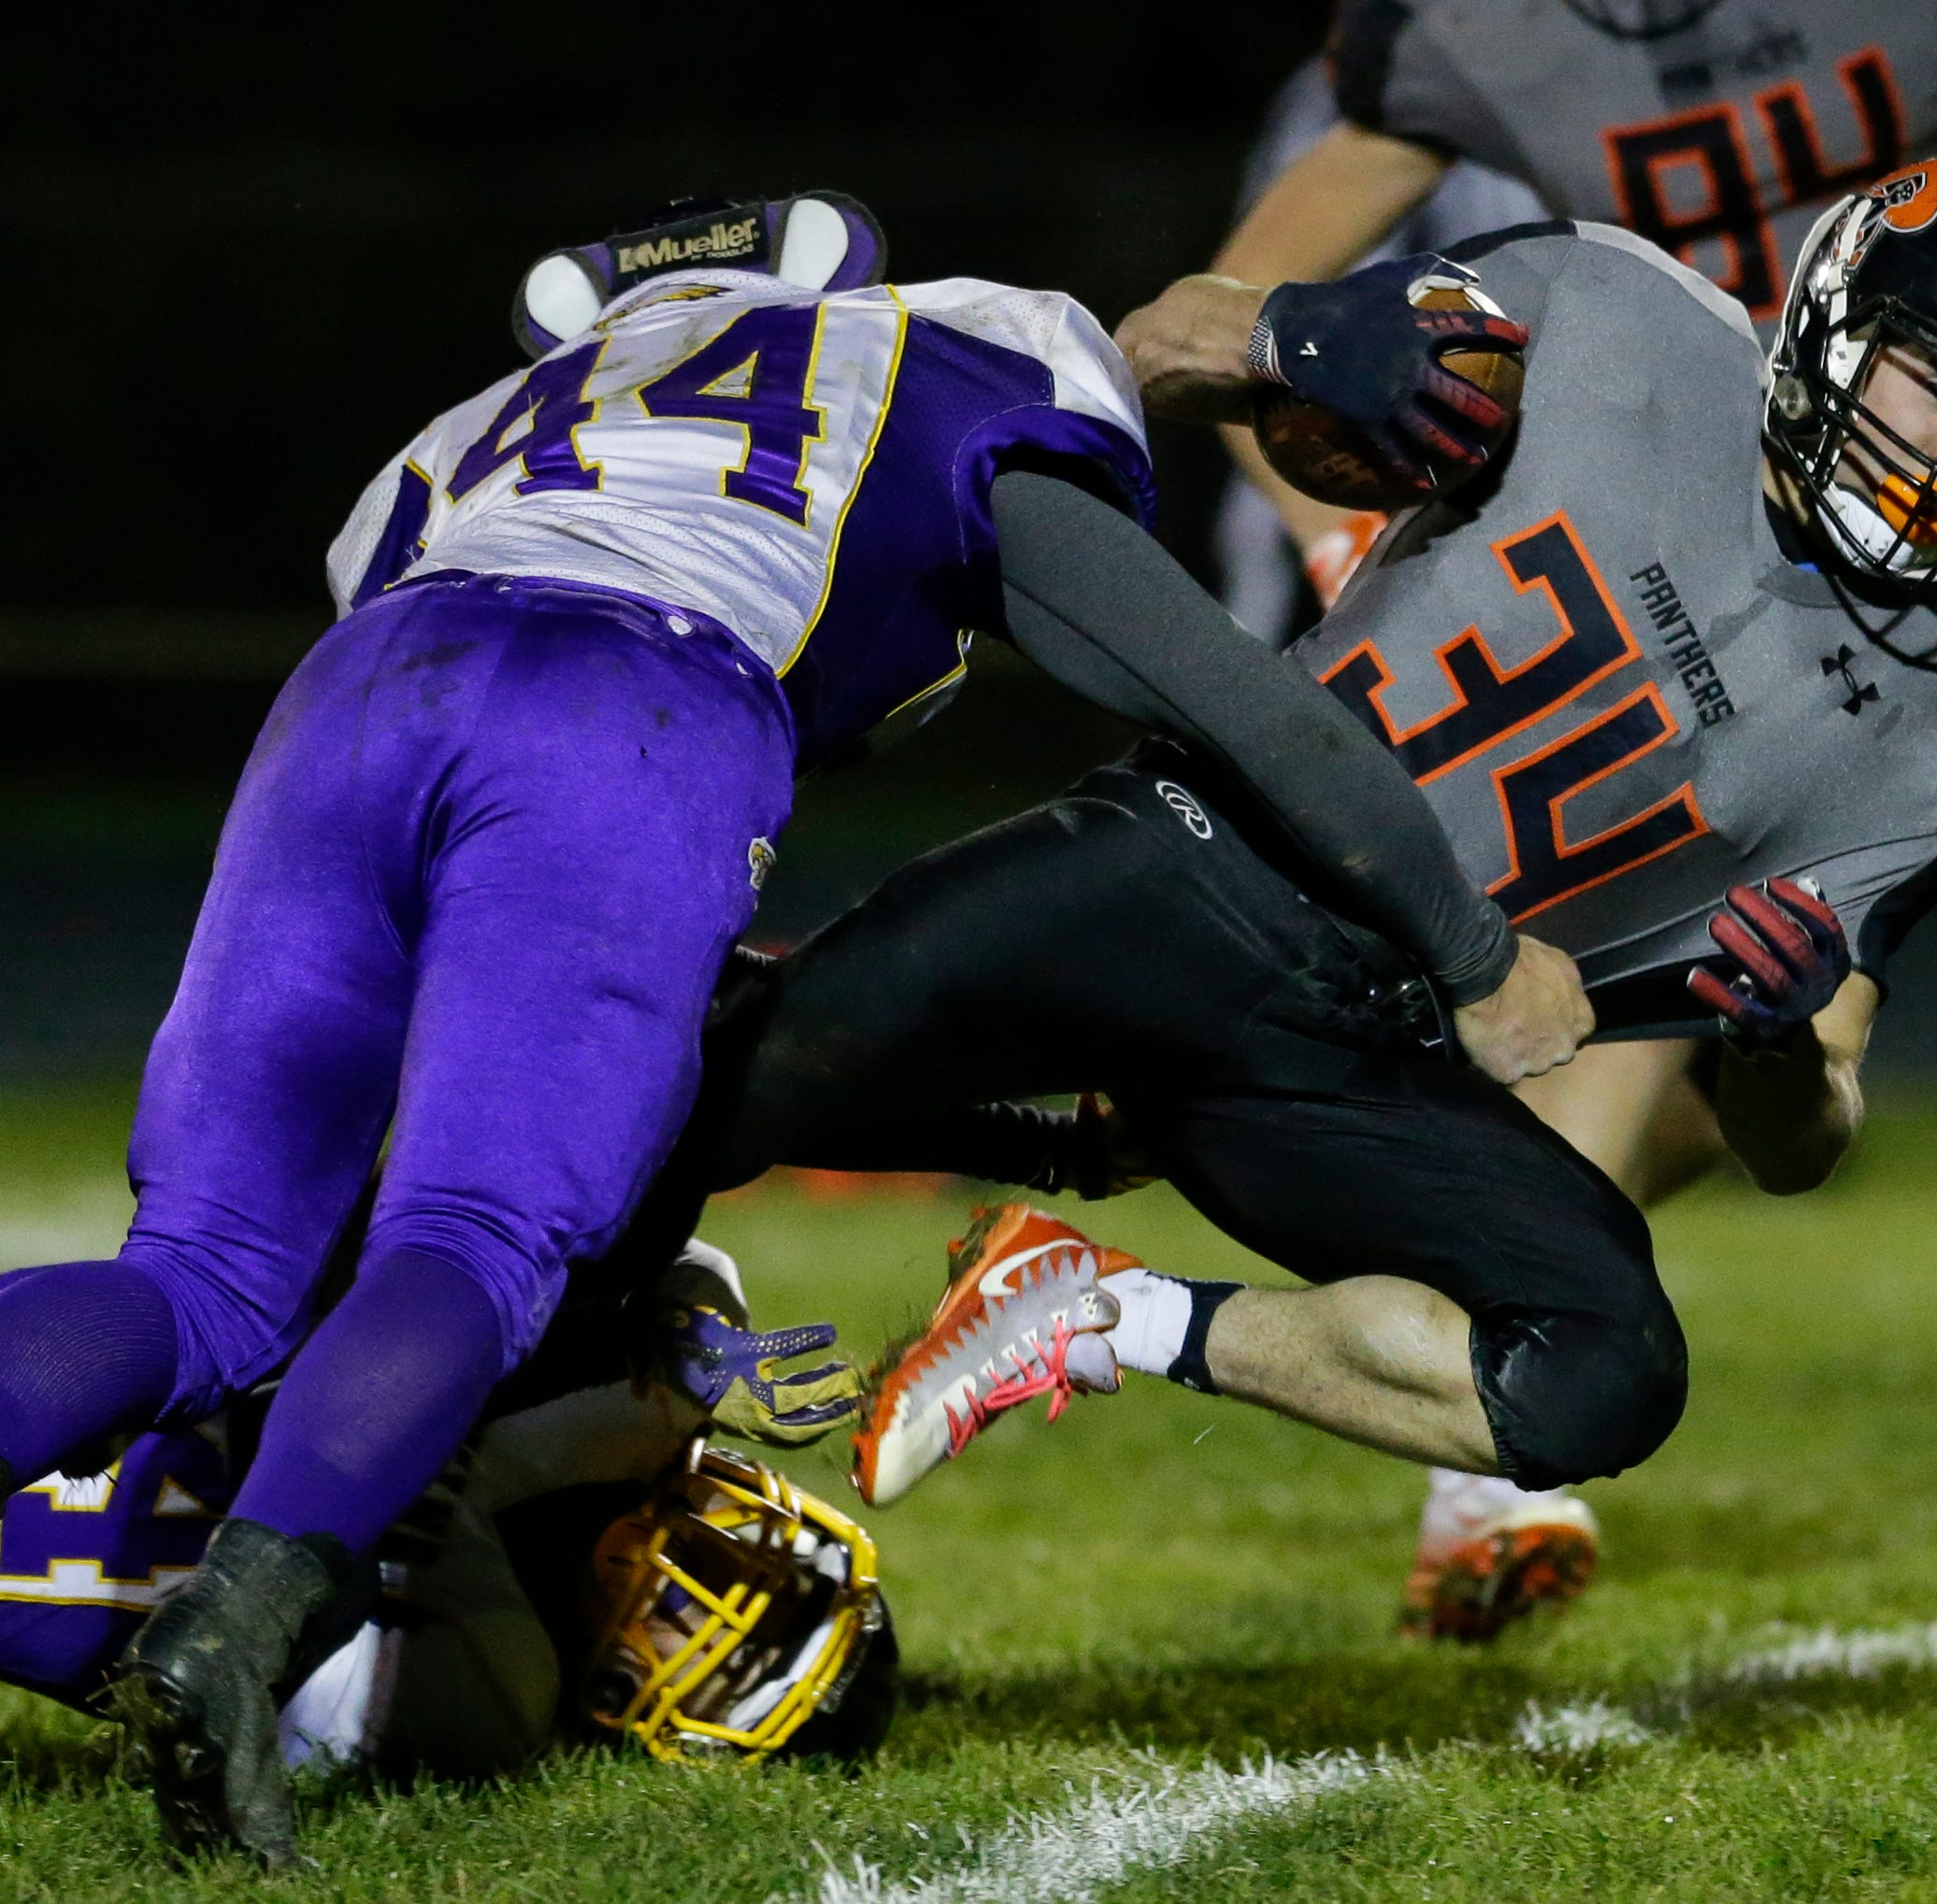 WIAA football: Reedsville's Stelzer sensational in first-ever home playoff win